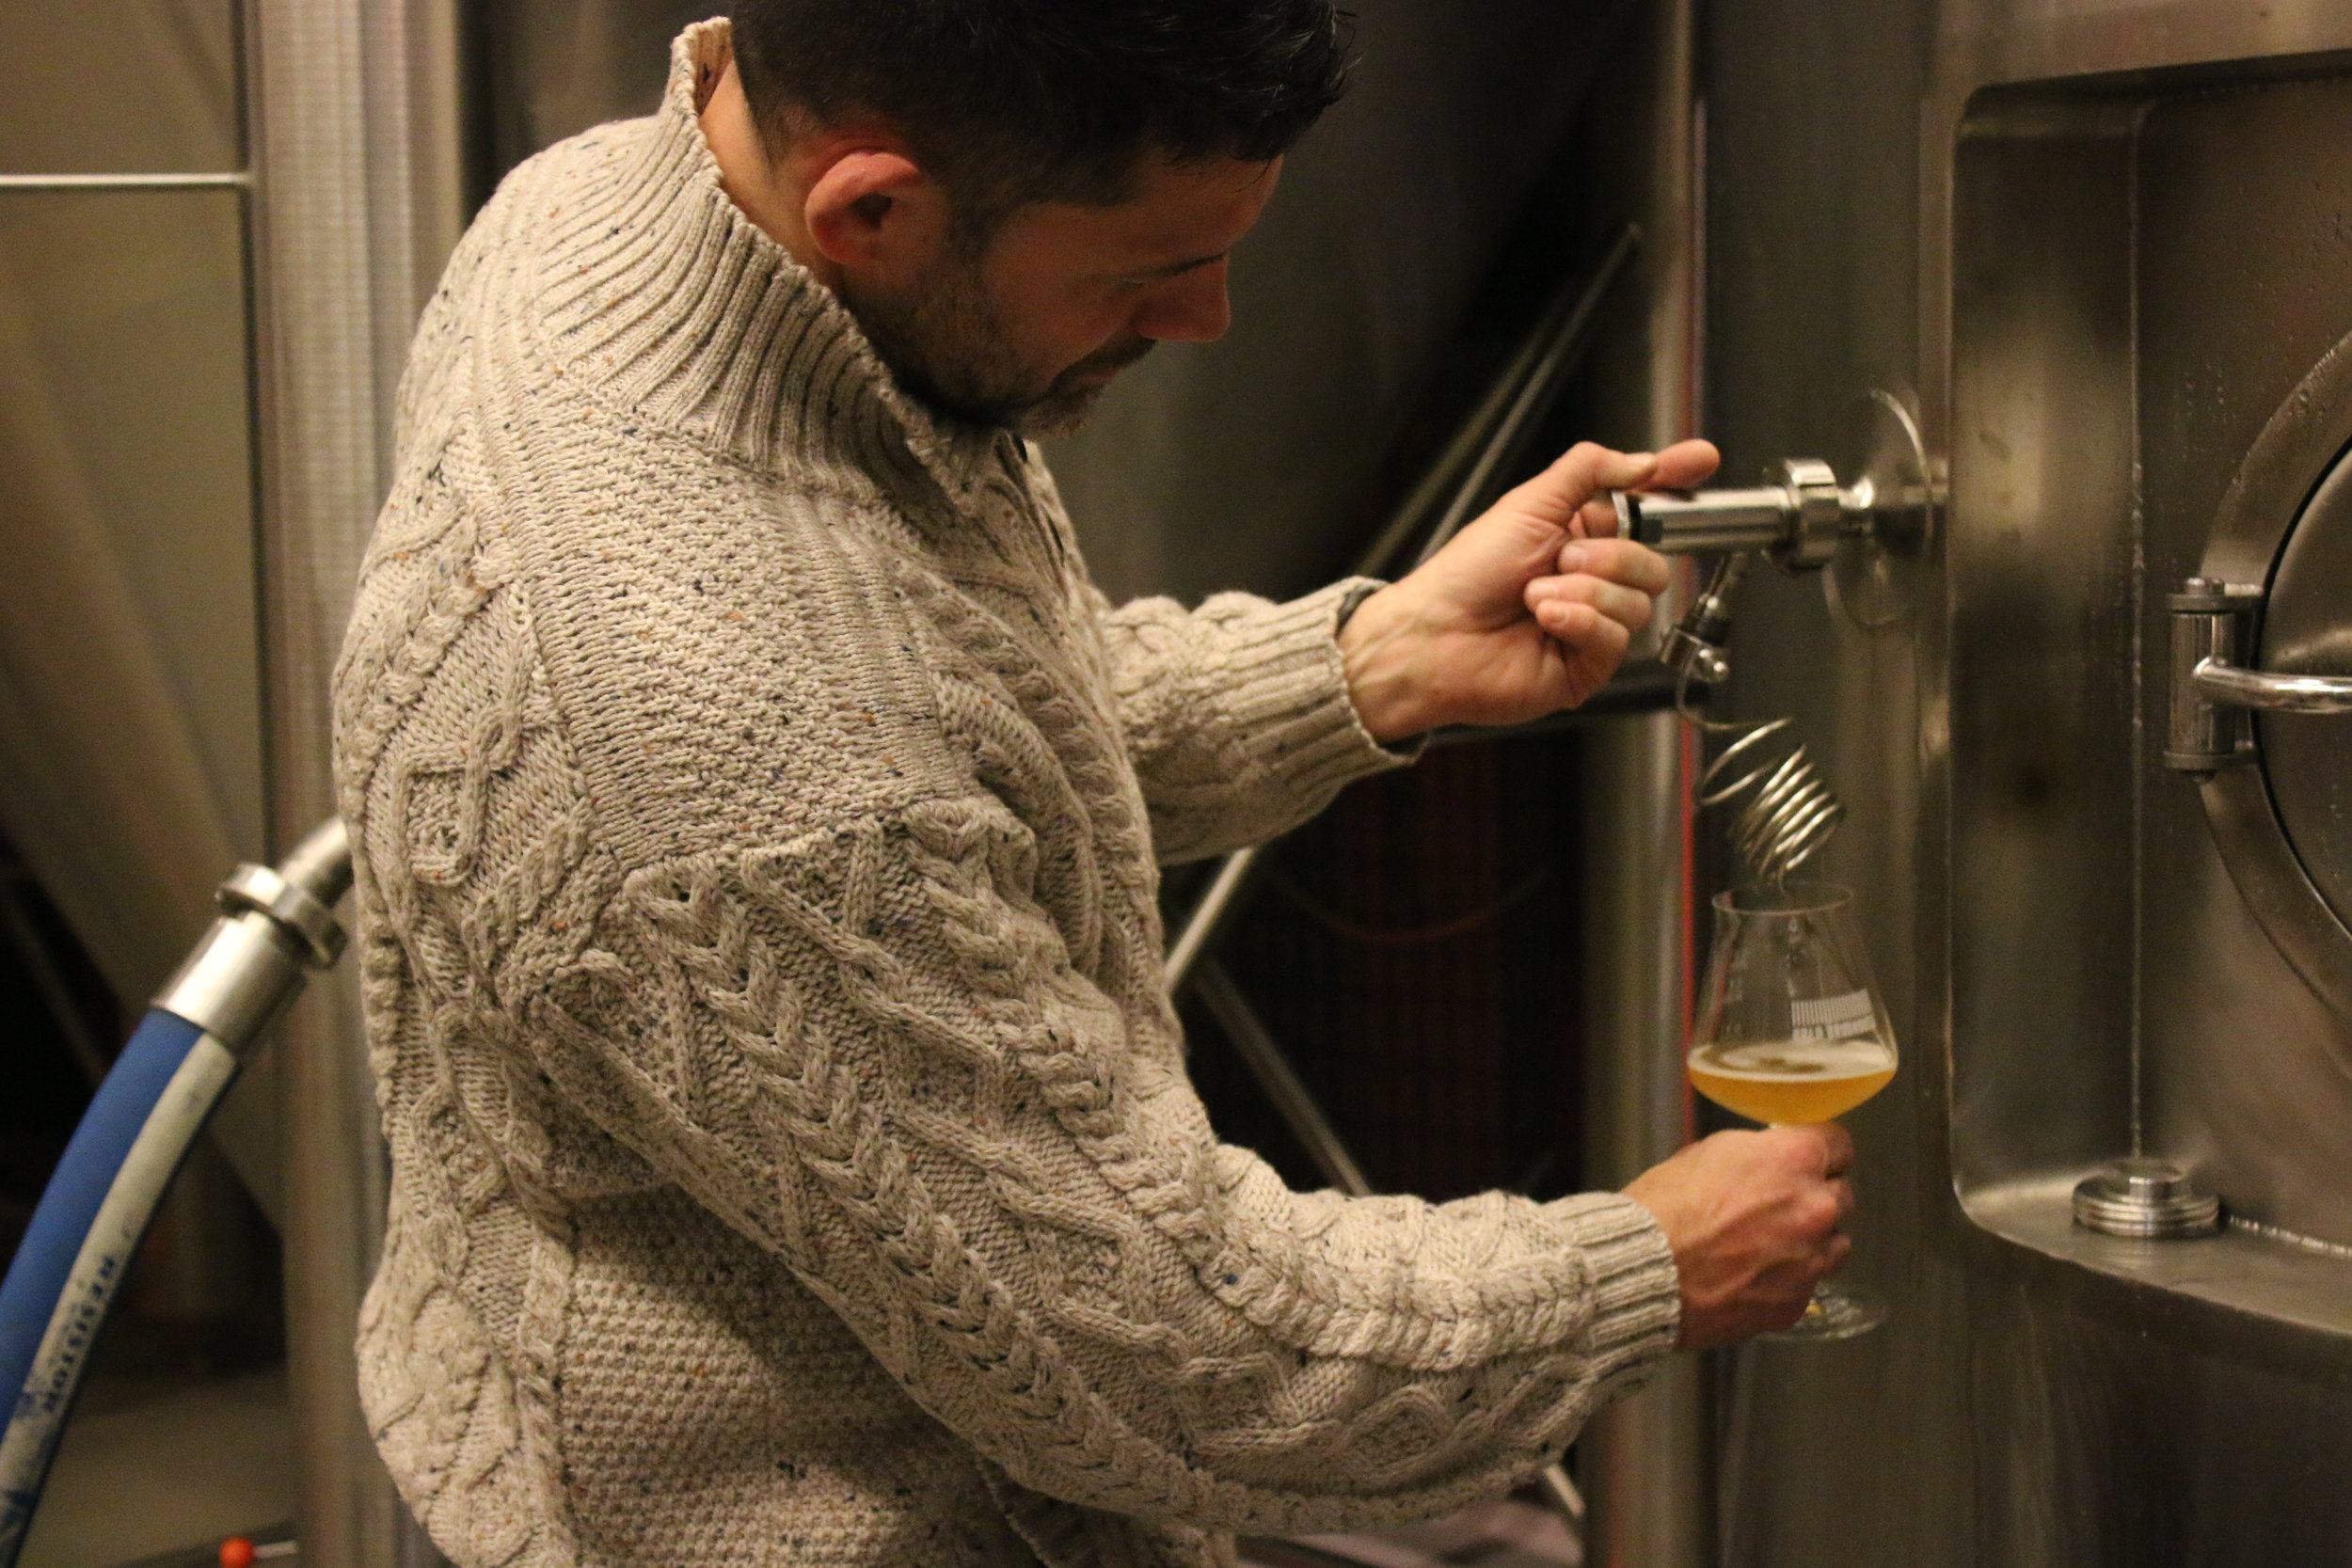 Pouring a fresh beer